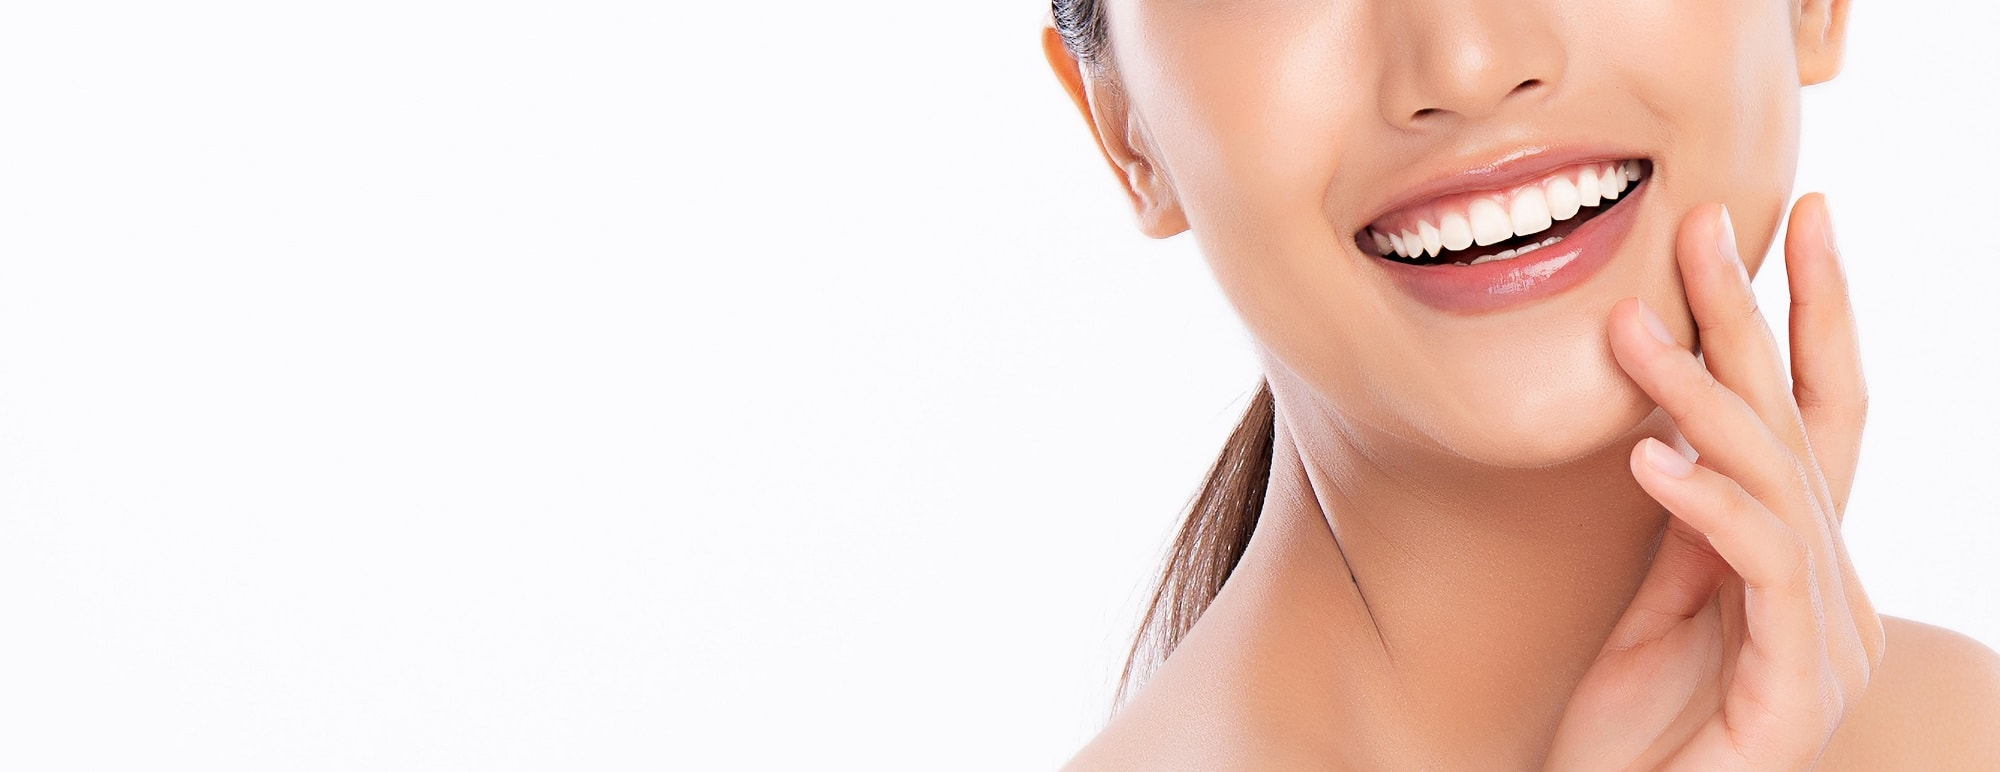 cosmetic dentistry in chania